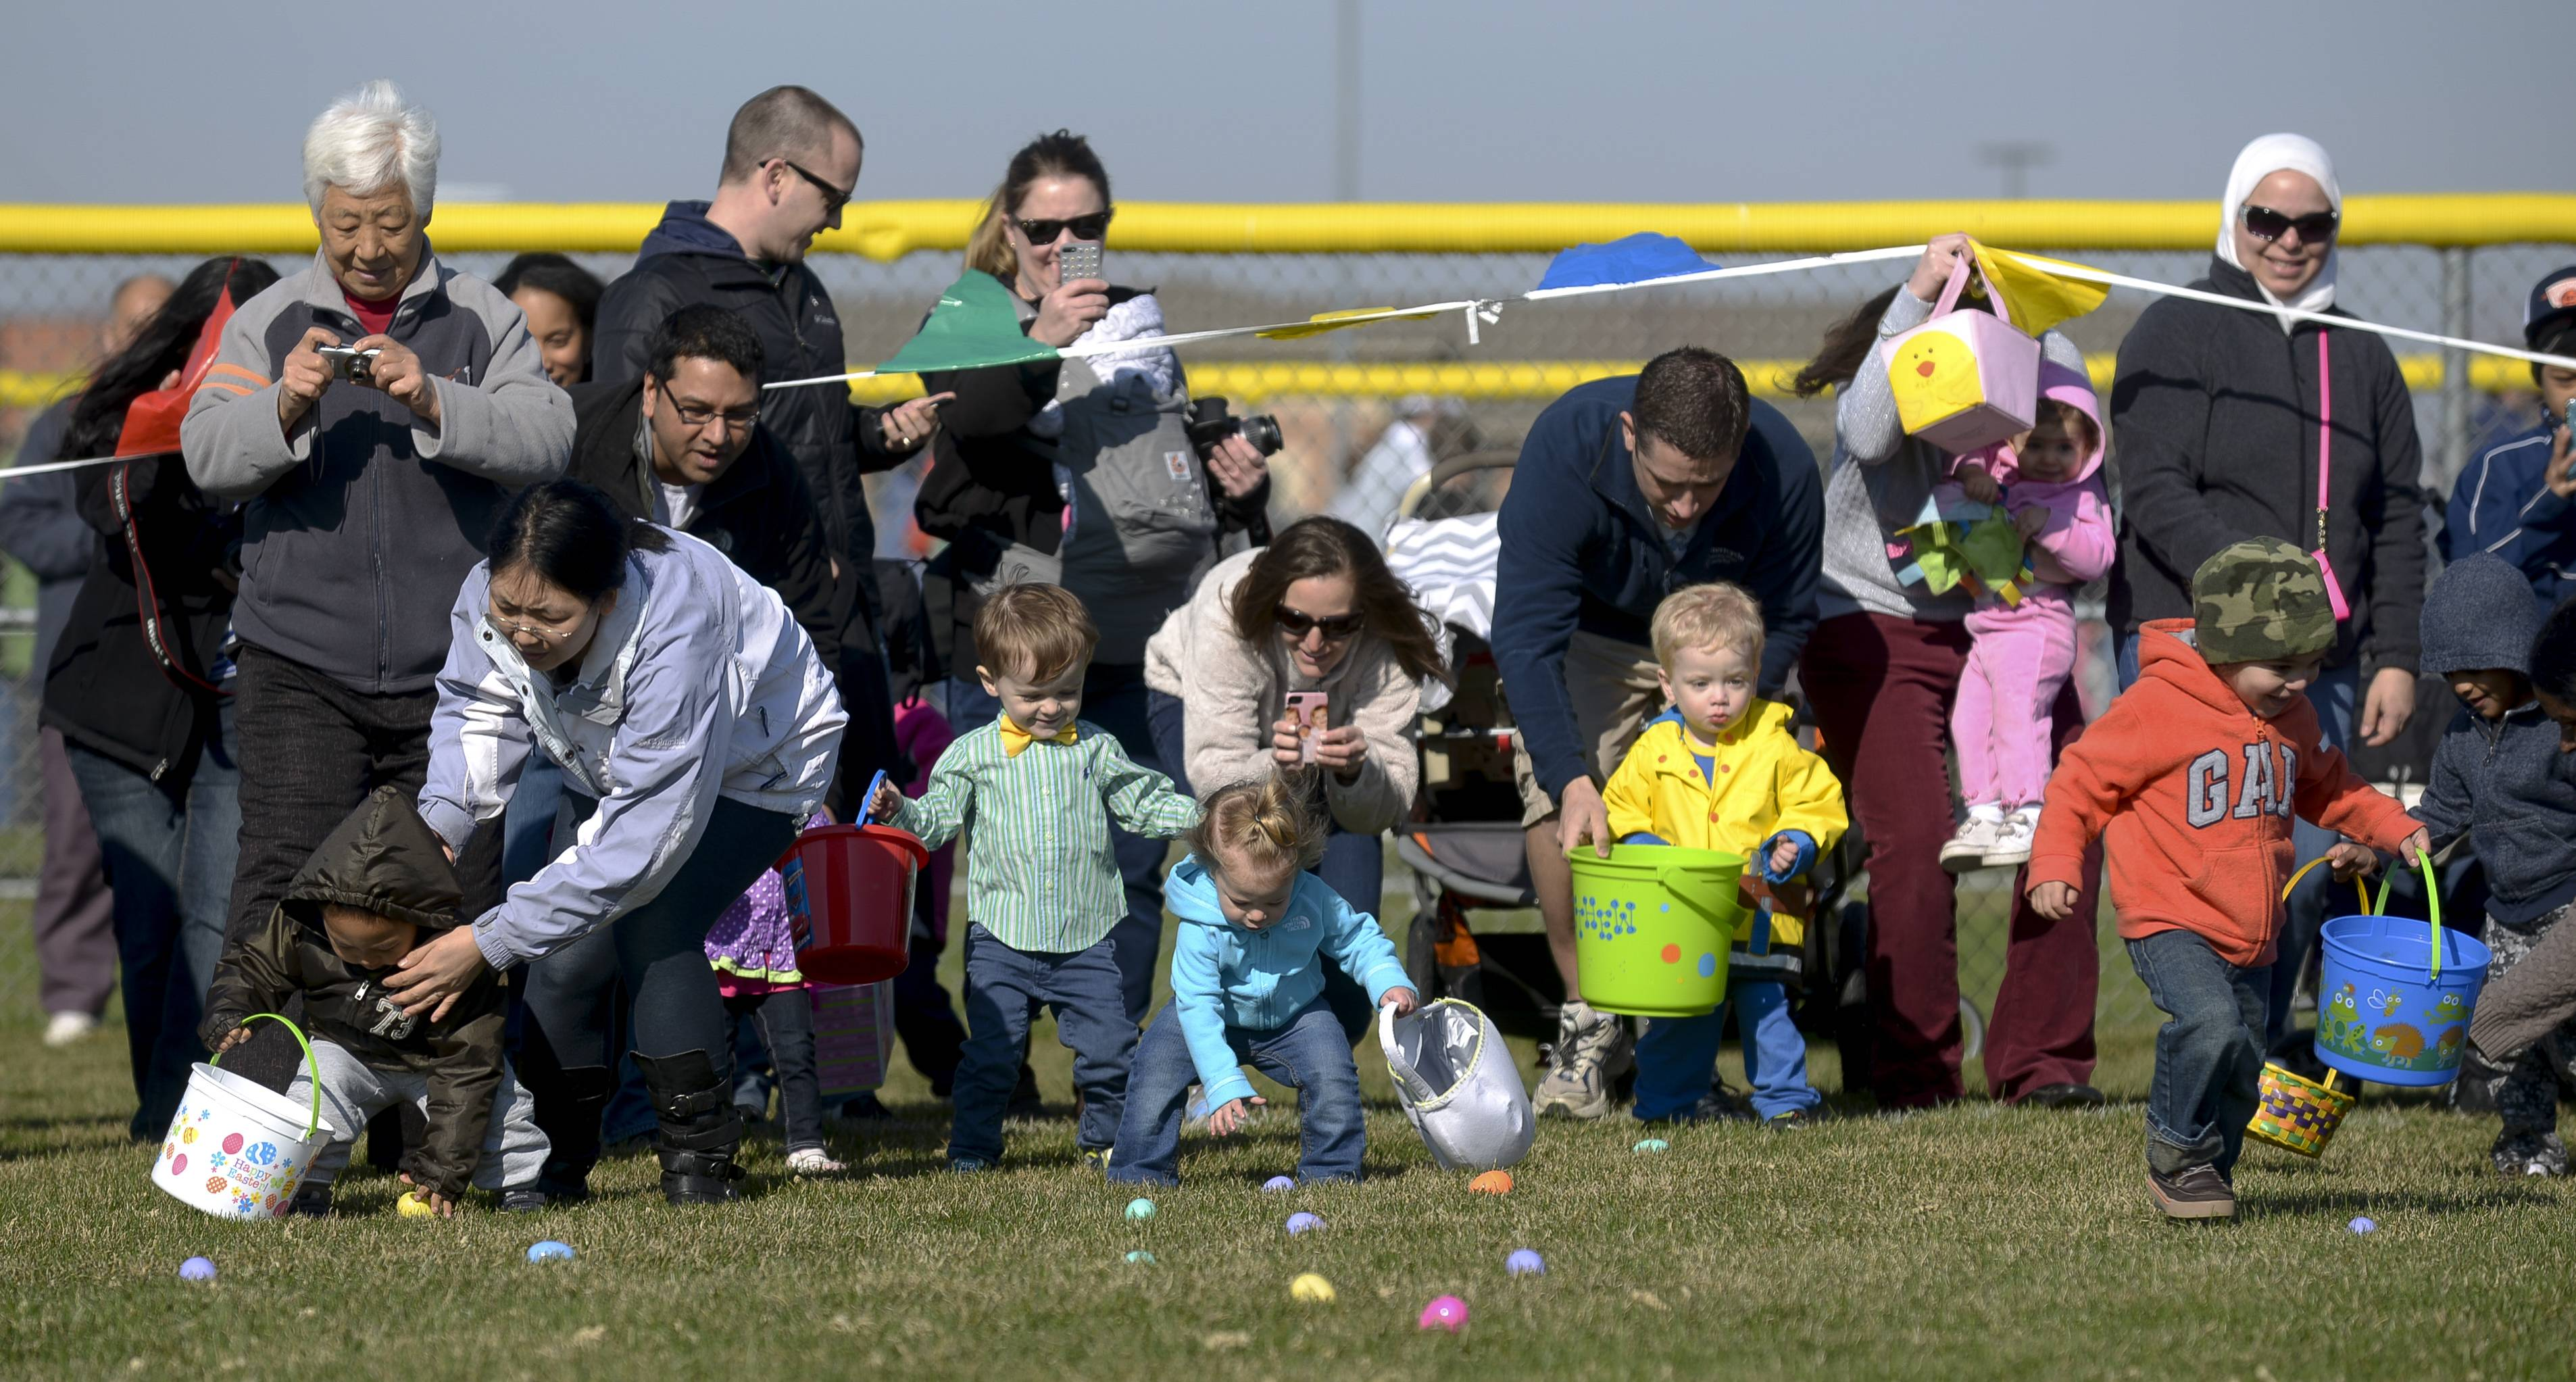 Children and parents scramble for eggs in the 0-2 field of the 29th annual Jaycees egg hunt at the Frontier Sports Complex in Naperville.